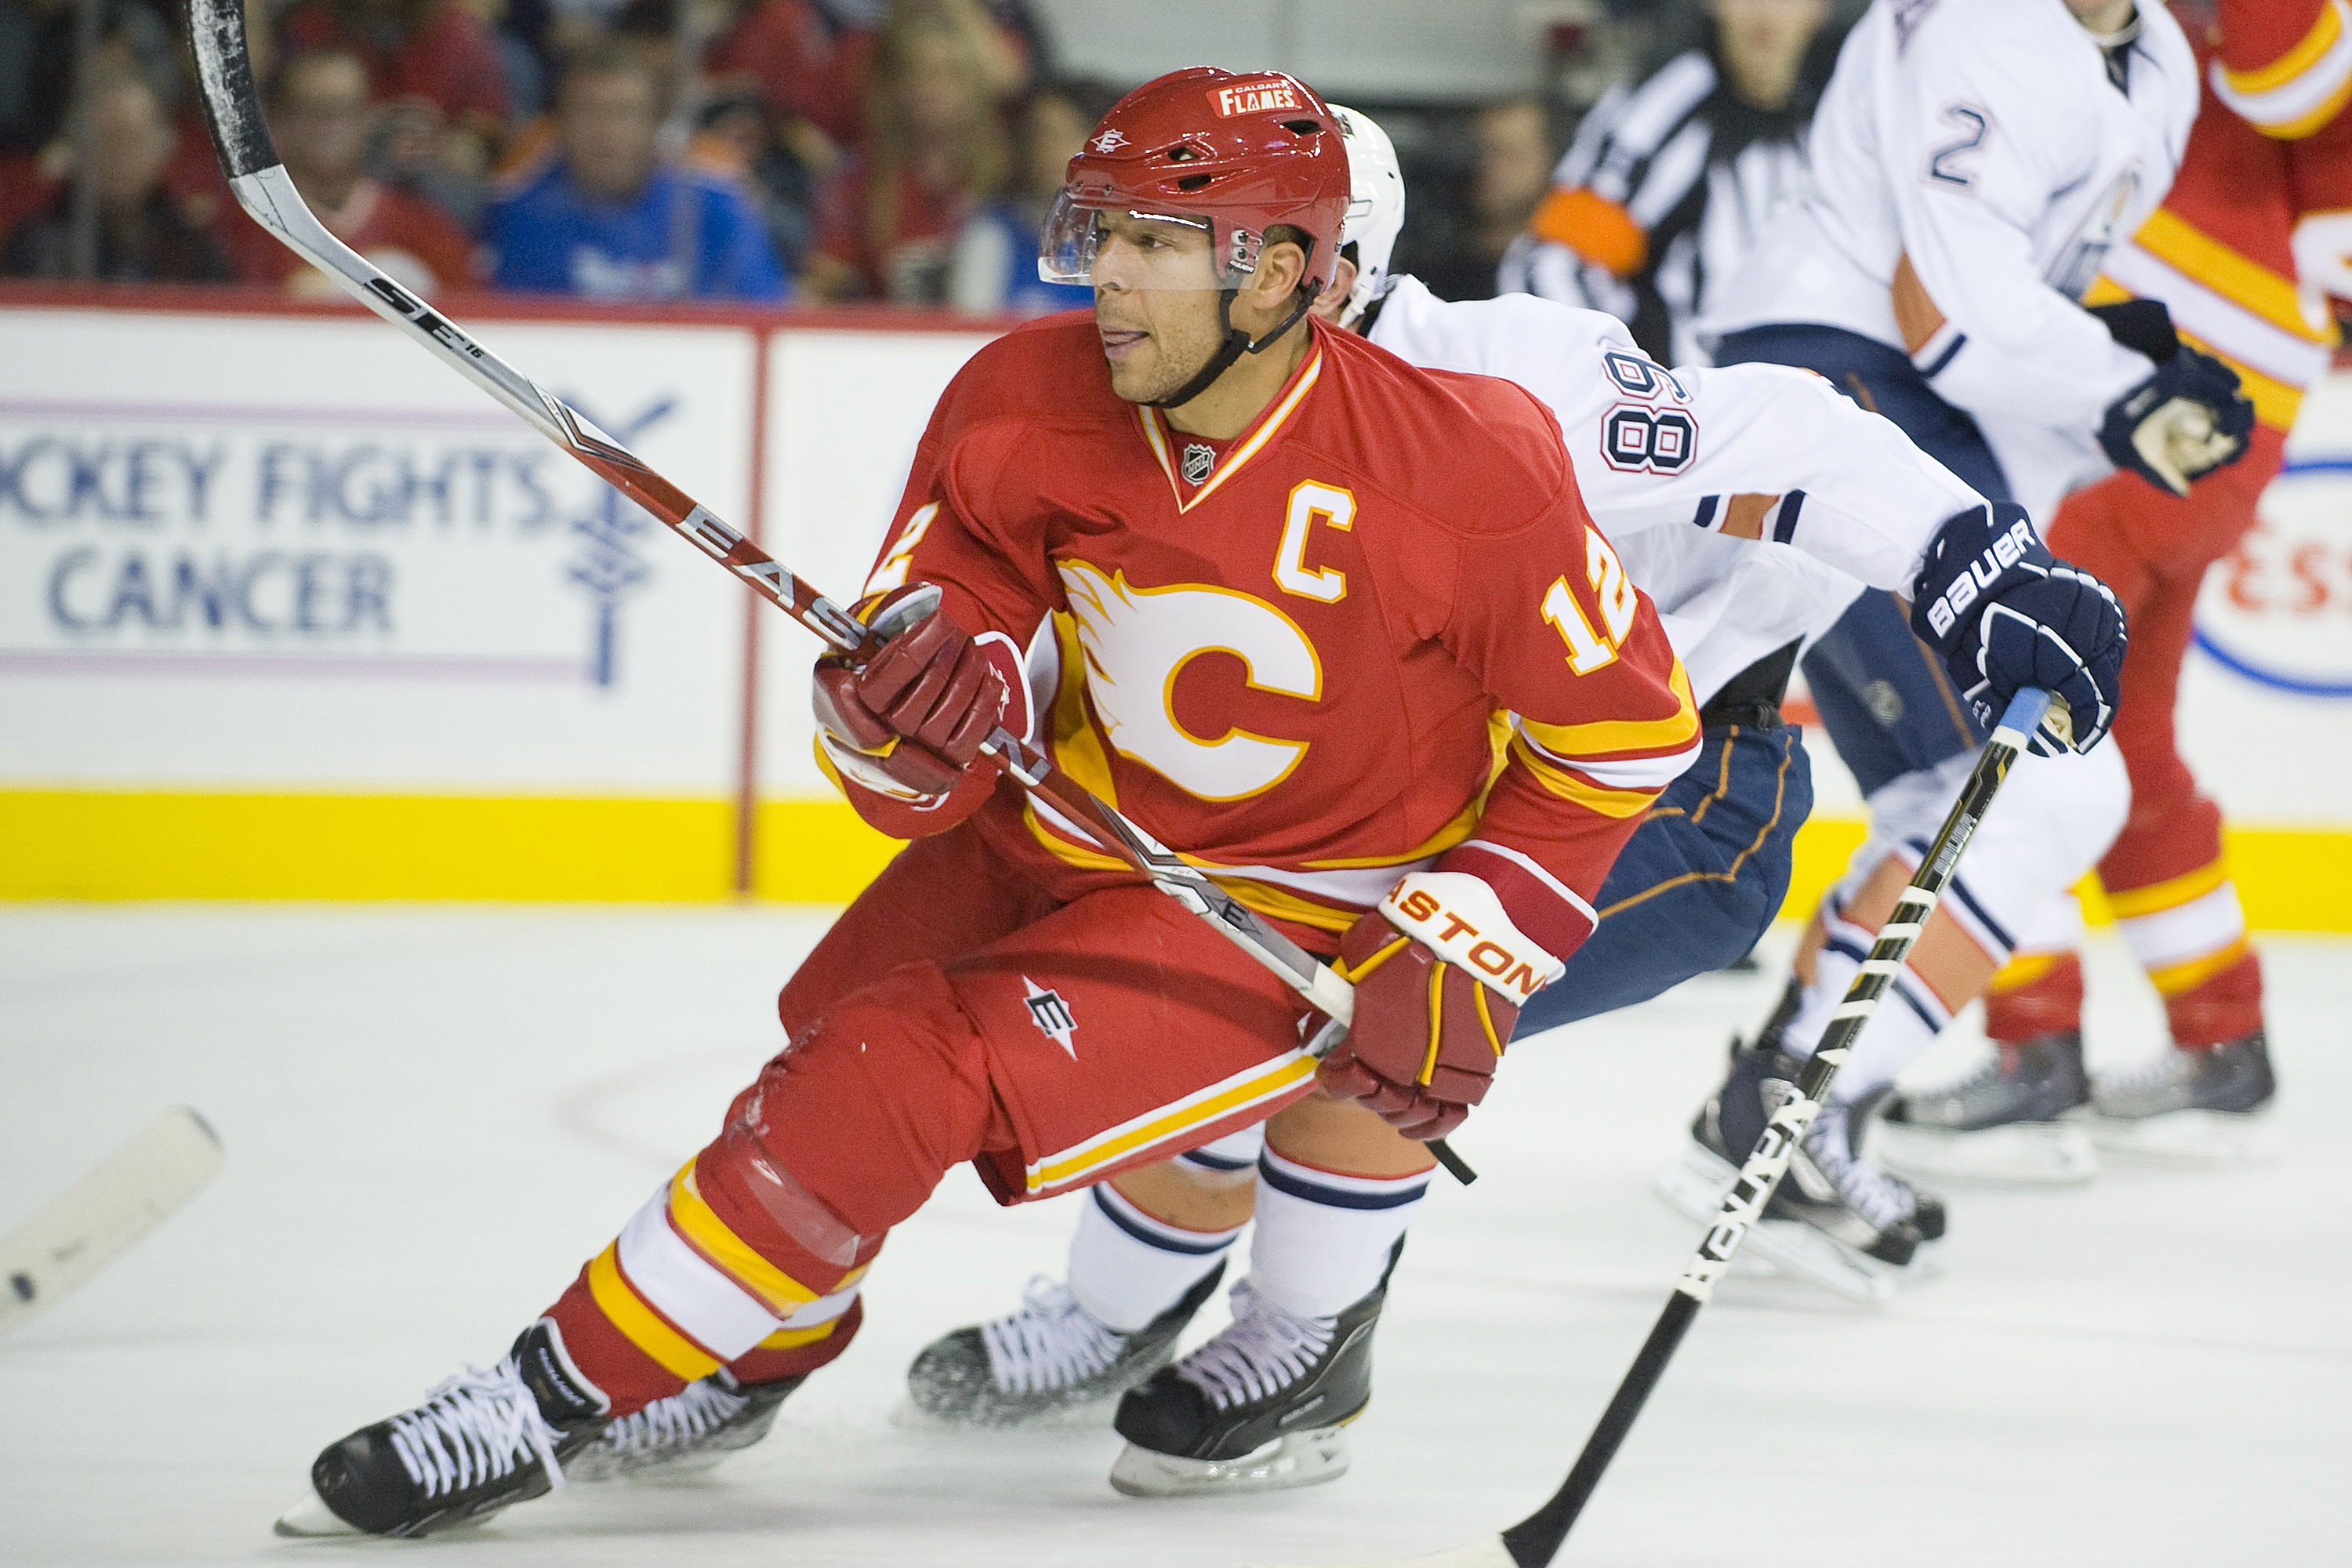 EDMONTON, CANADA - OCTOBER 16:  Calgary Flames right wing Jarome Iginla #12 reacts to the play against the Edmonton Oilers at the Scotiabank Saddledome  on October 16, 2010 in Calgary, Alberta, Canada.  The Flames beat the Oilers 5-3.  (Photo by Dylan Lyn